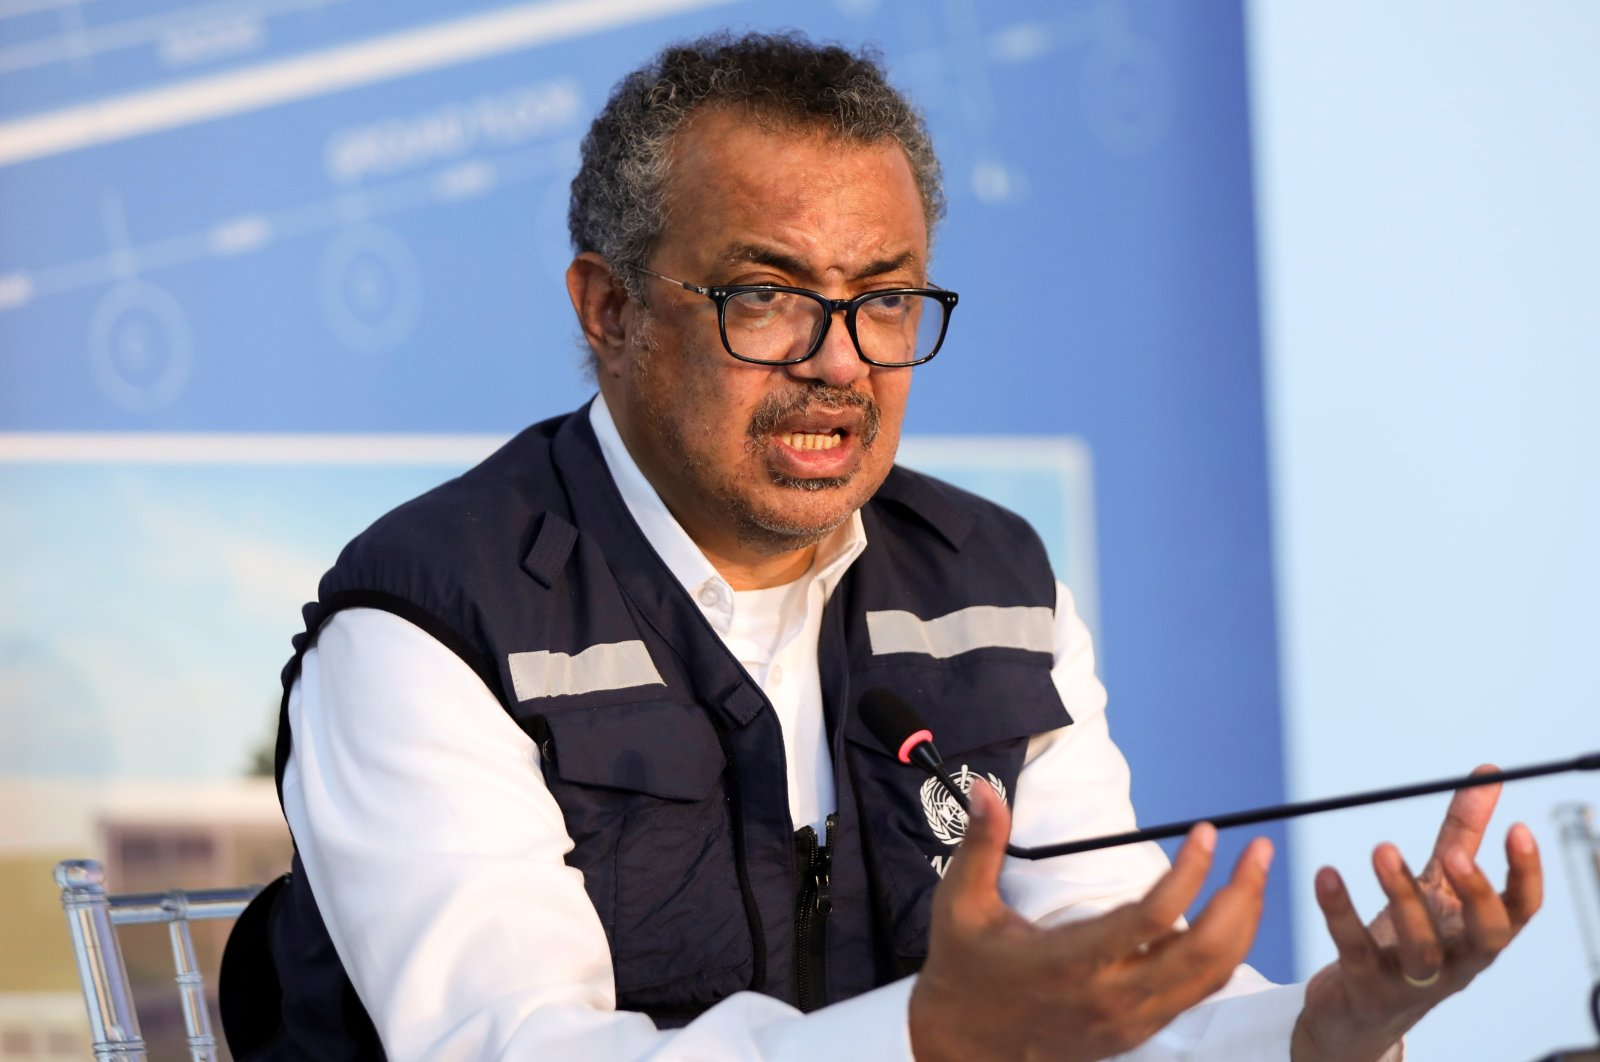 World Health Organization (WHO) Director-General Tedros Adhanom Ghebreyesus, gestures during a news conference in Beirut, Lebanon, Sept. 17, 2021. (Reuters Photo)